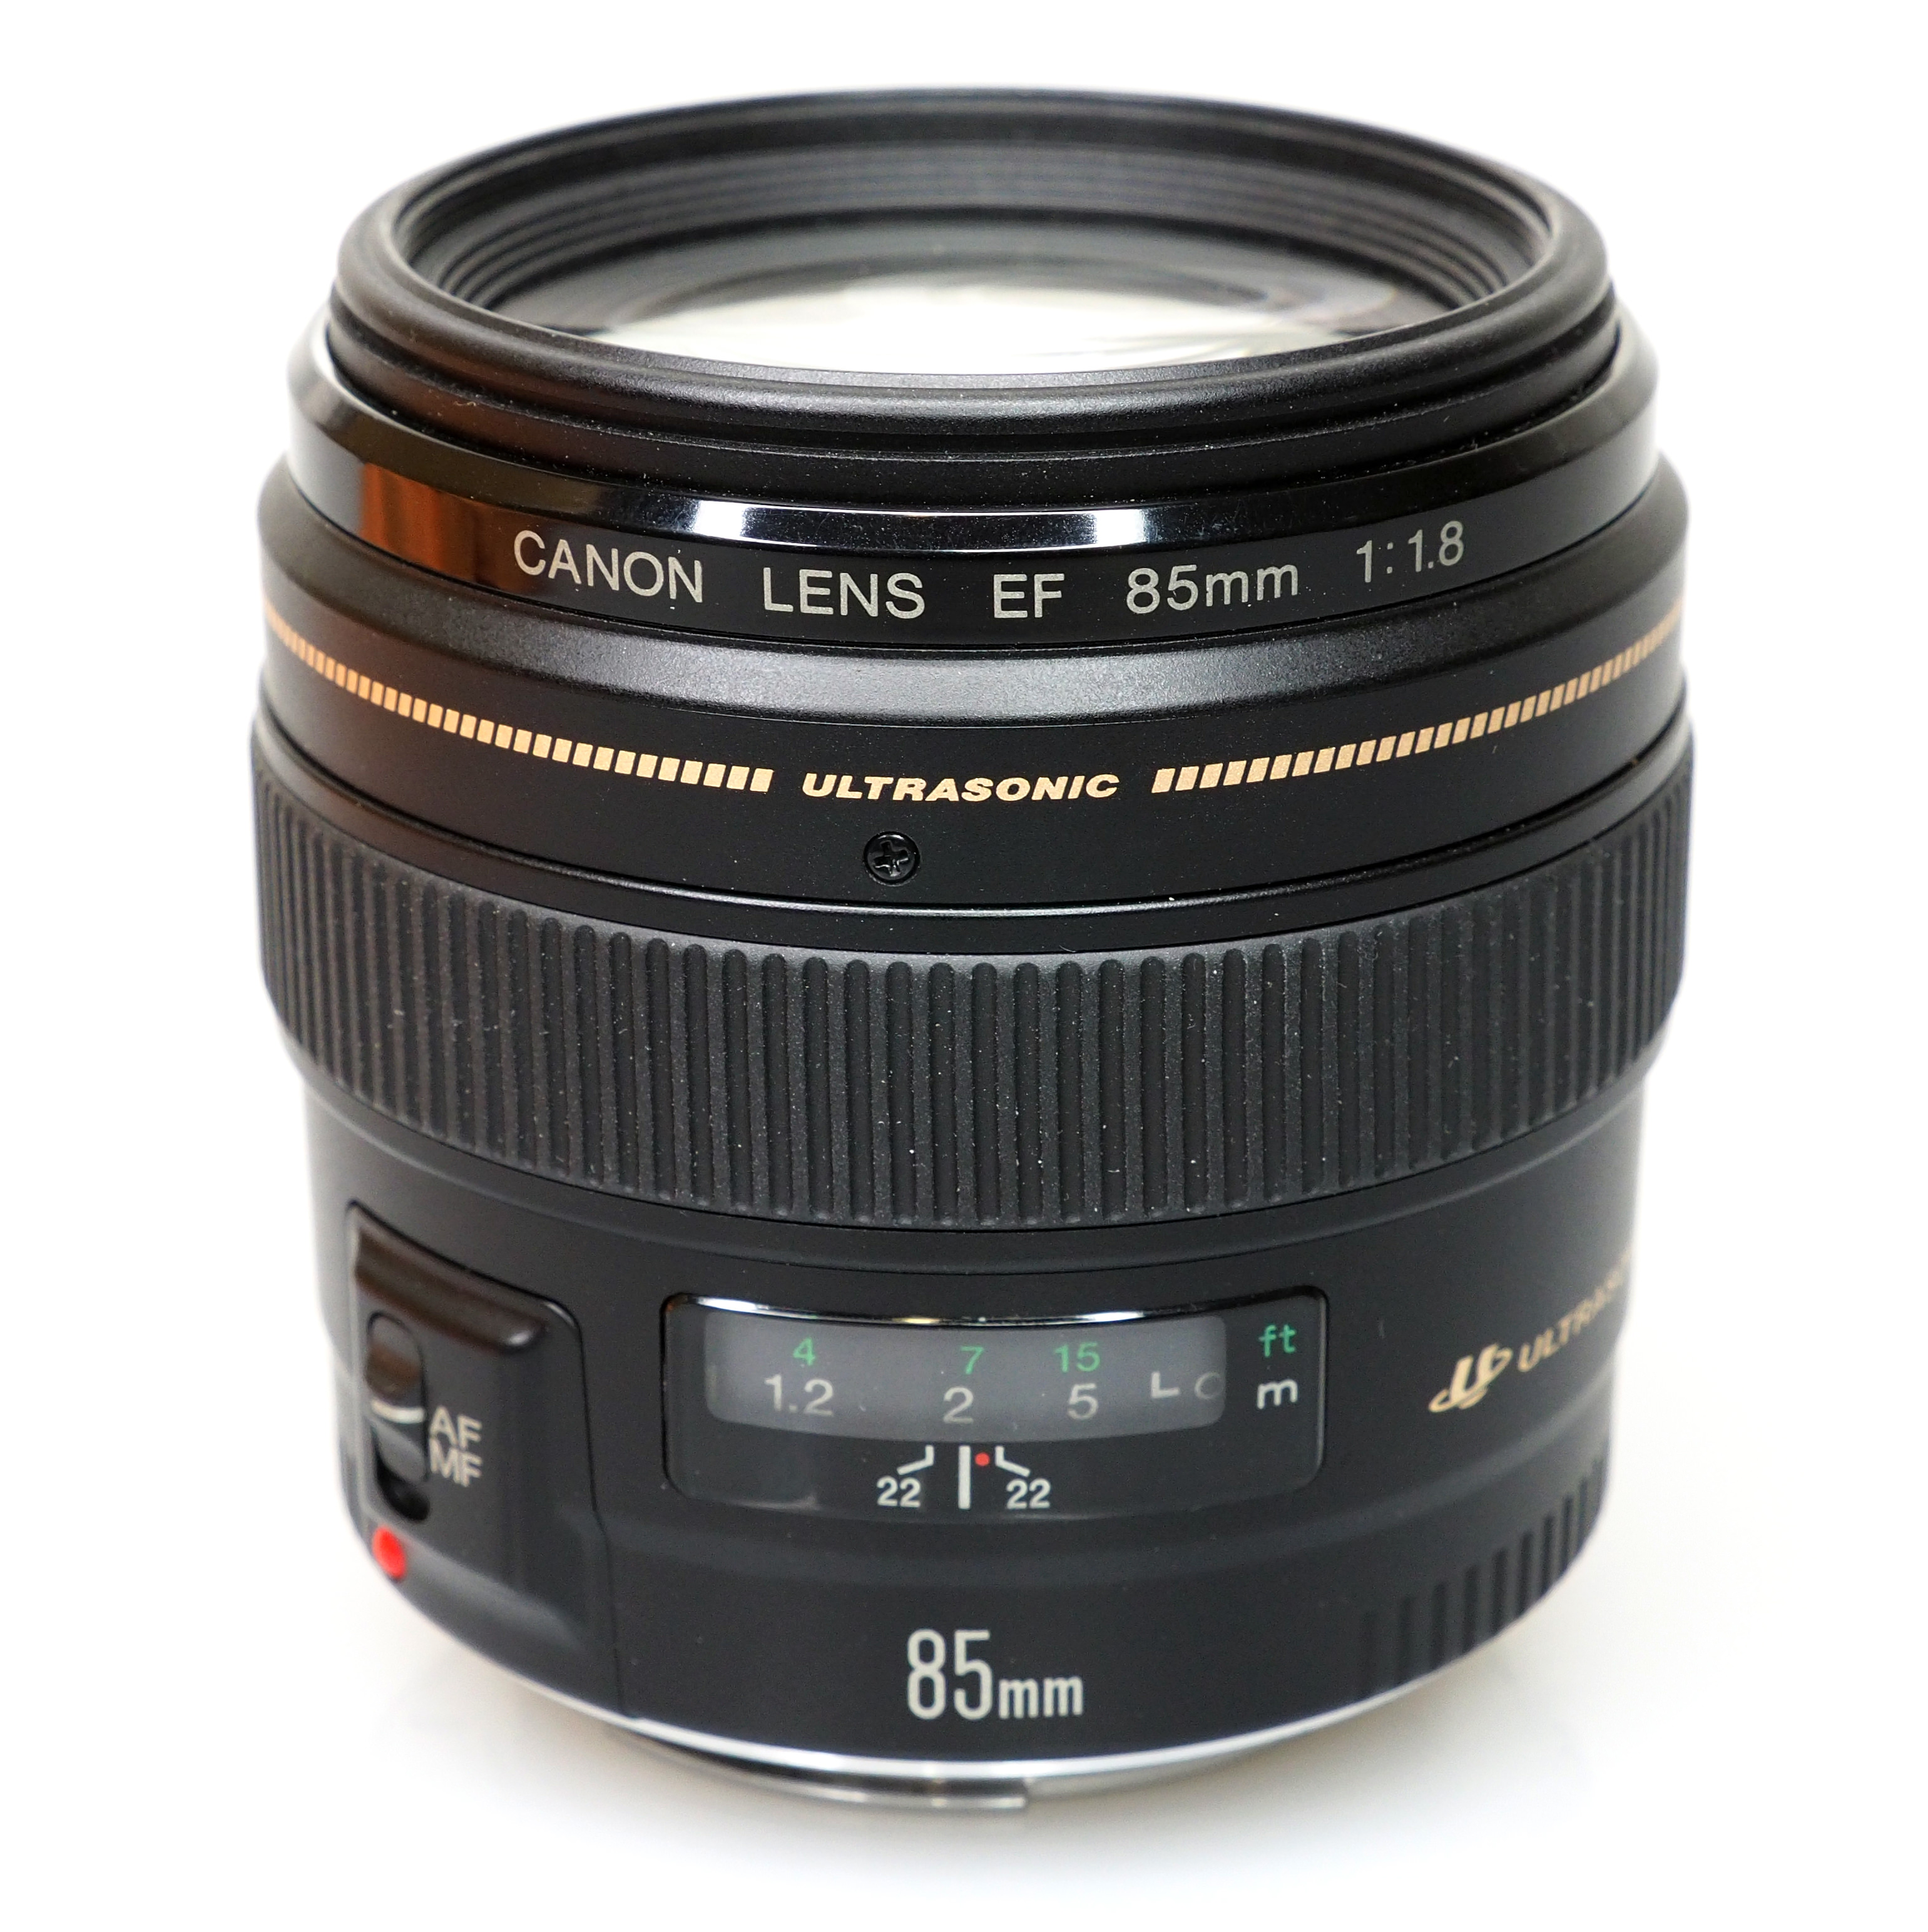 Buy Canon EF 85mm f/1.8 USM Lens at the BEST price in ...